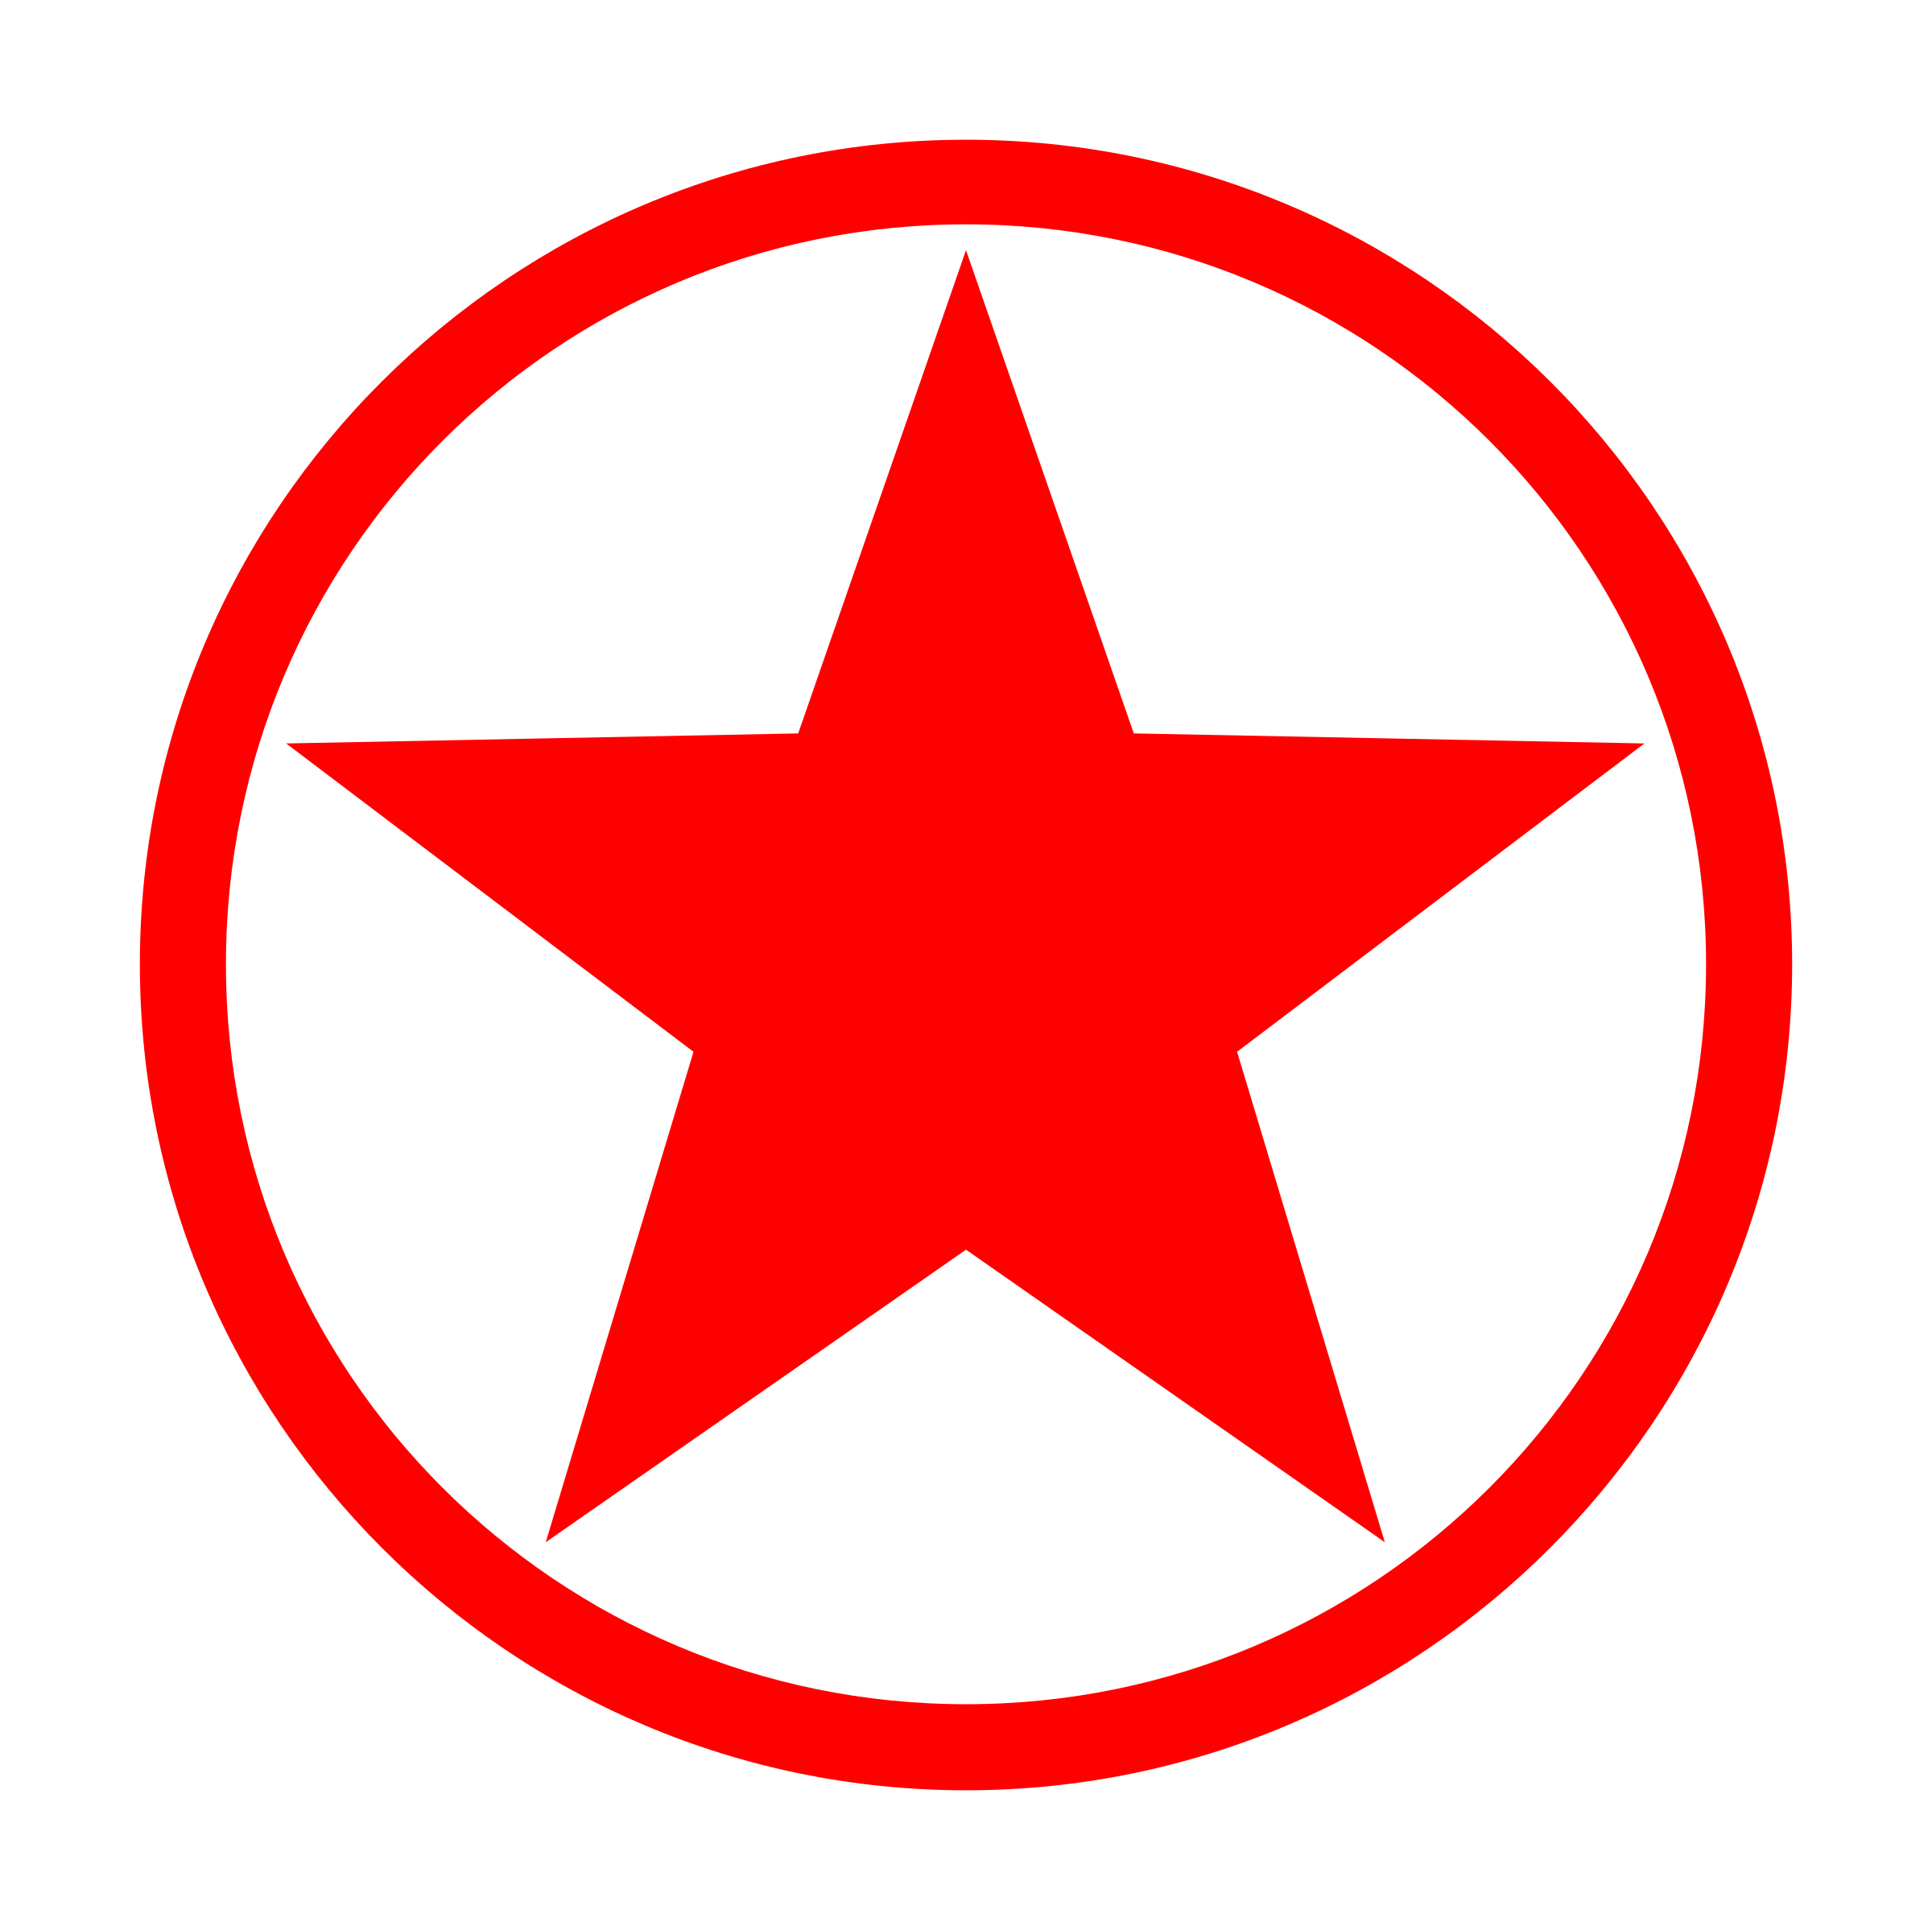 Star in Circle by worker